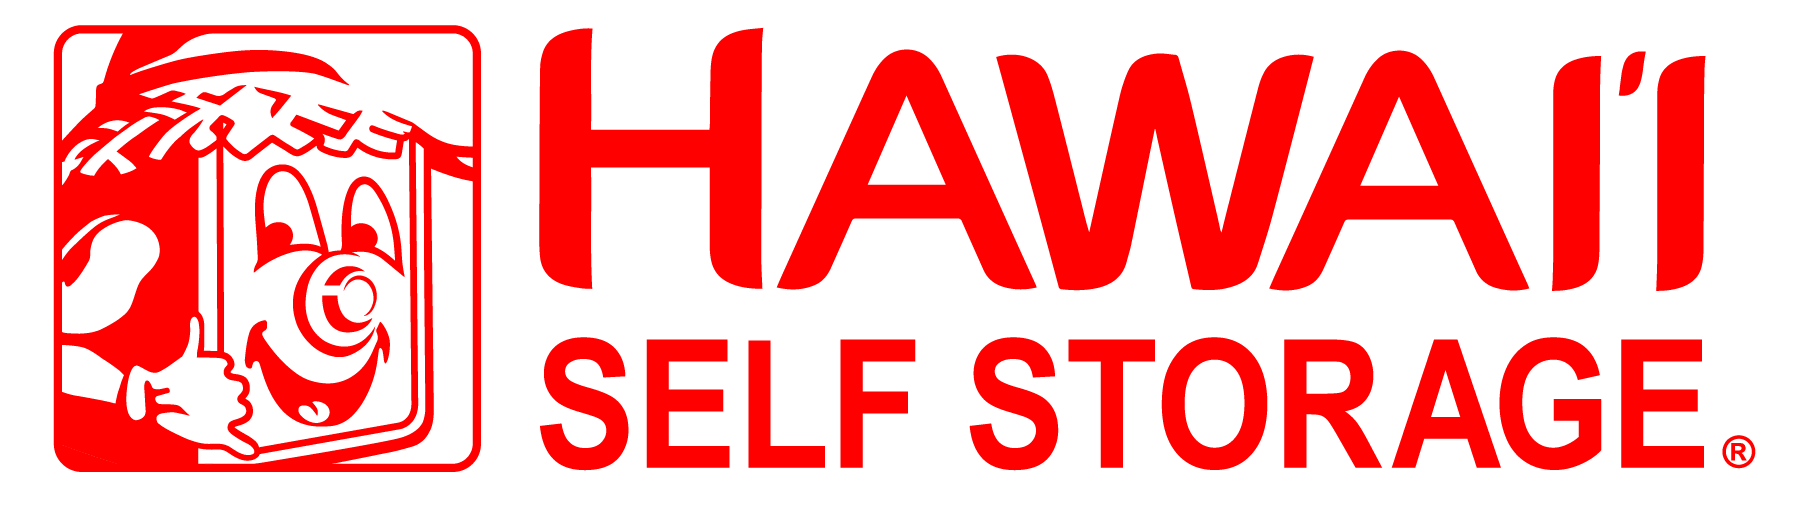 Hawai'i Self Storage